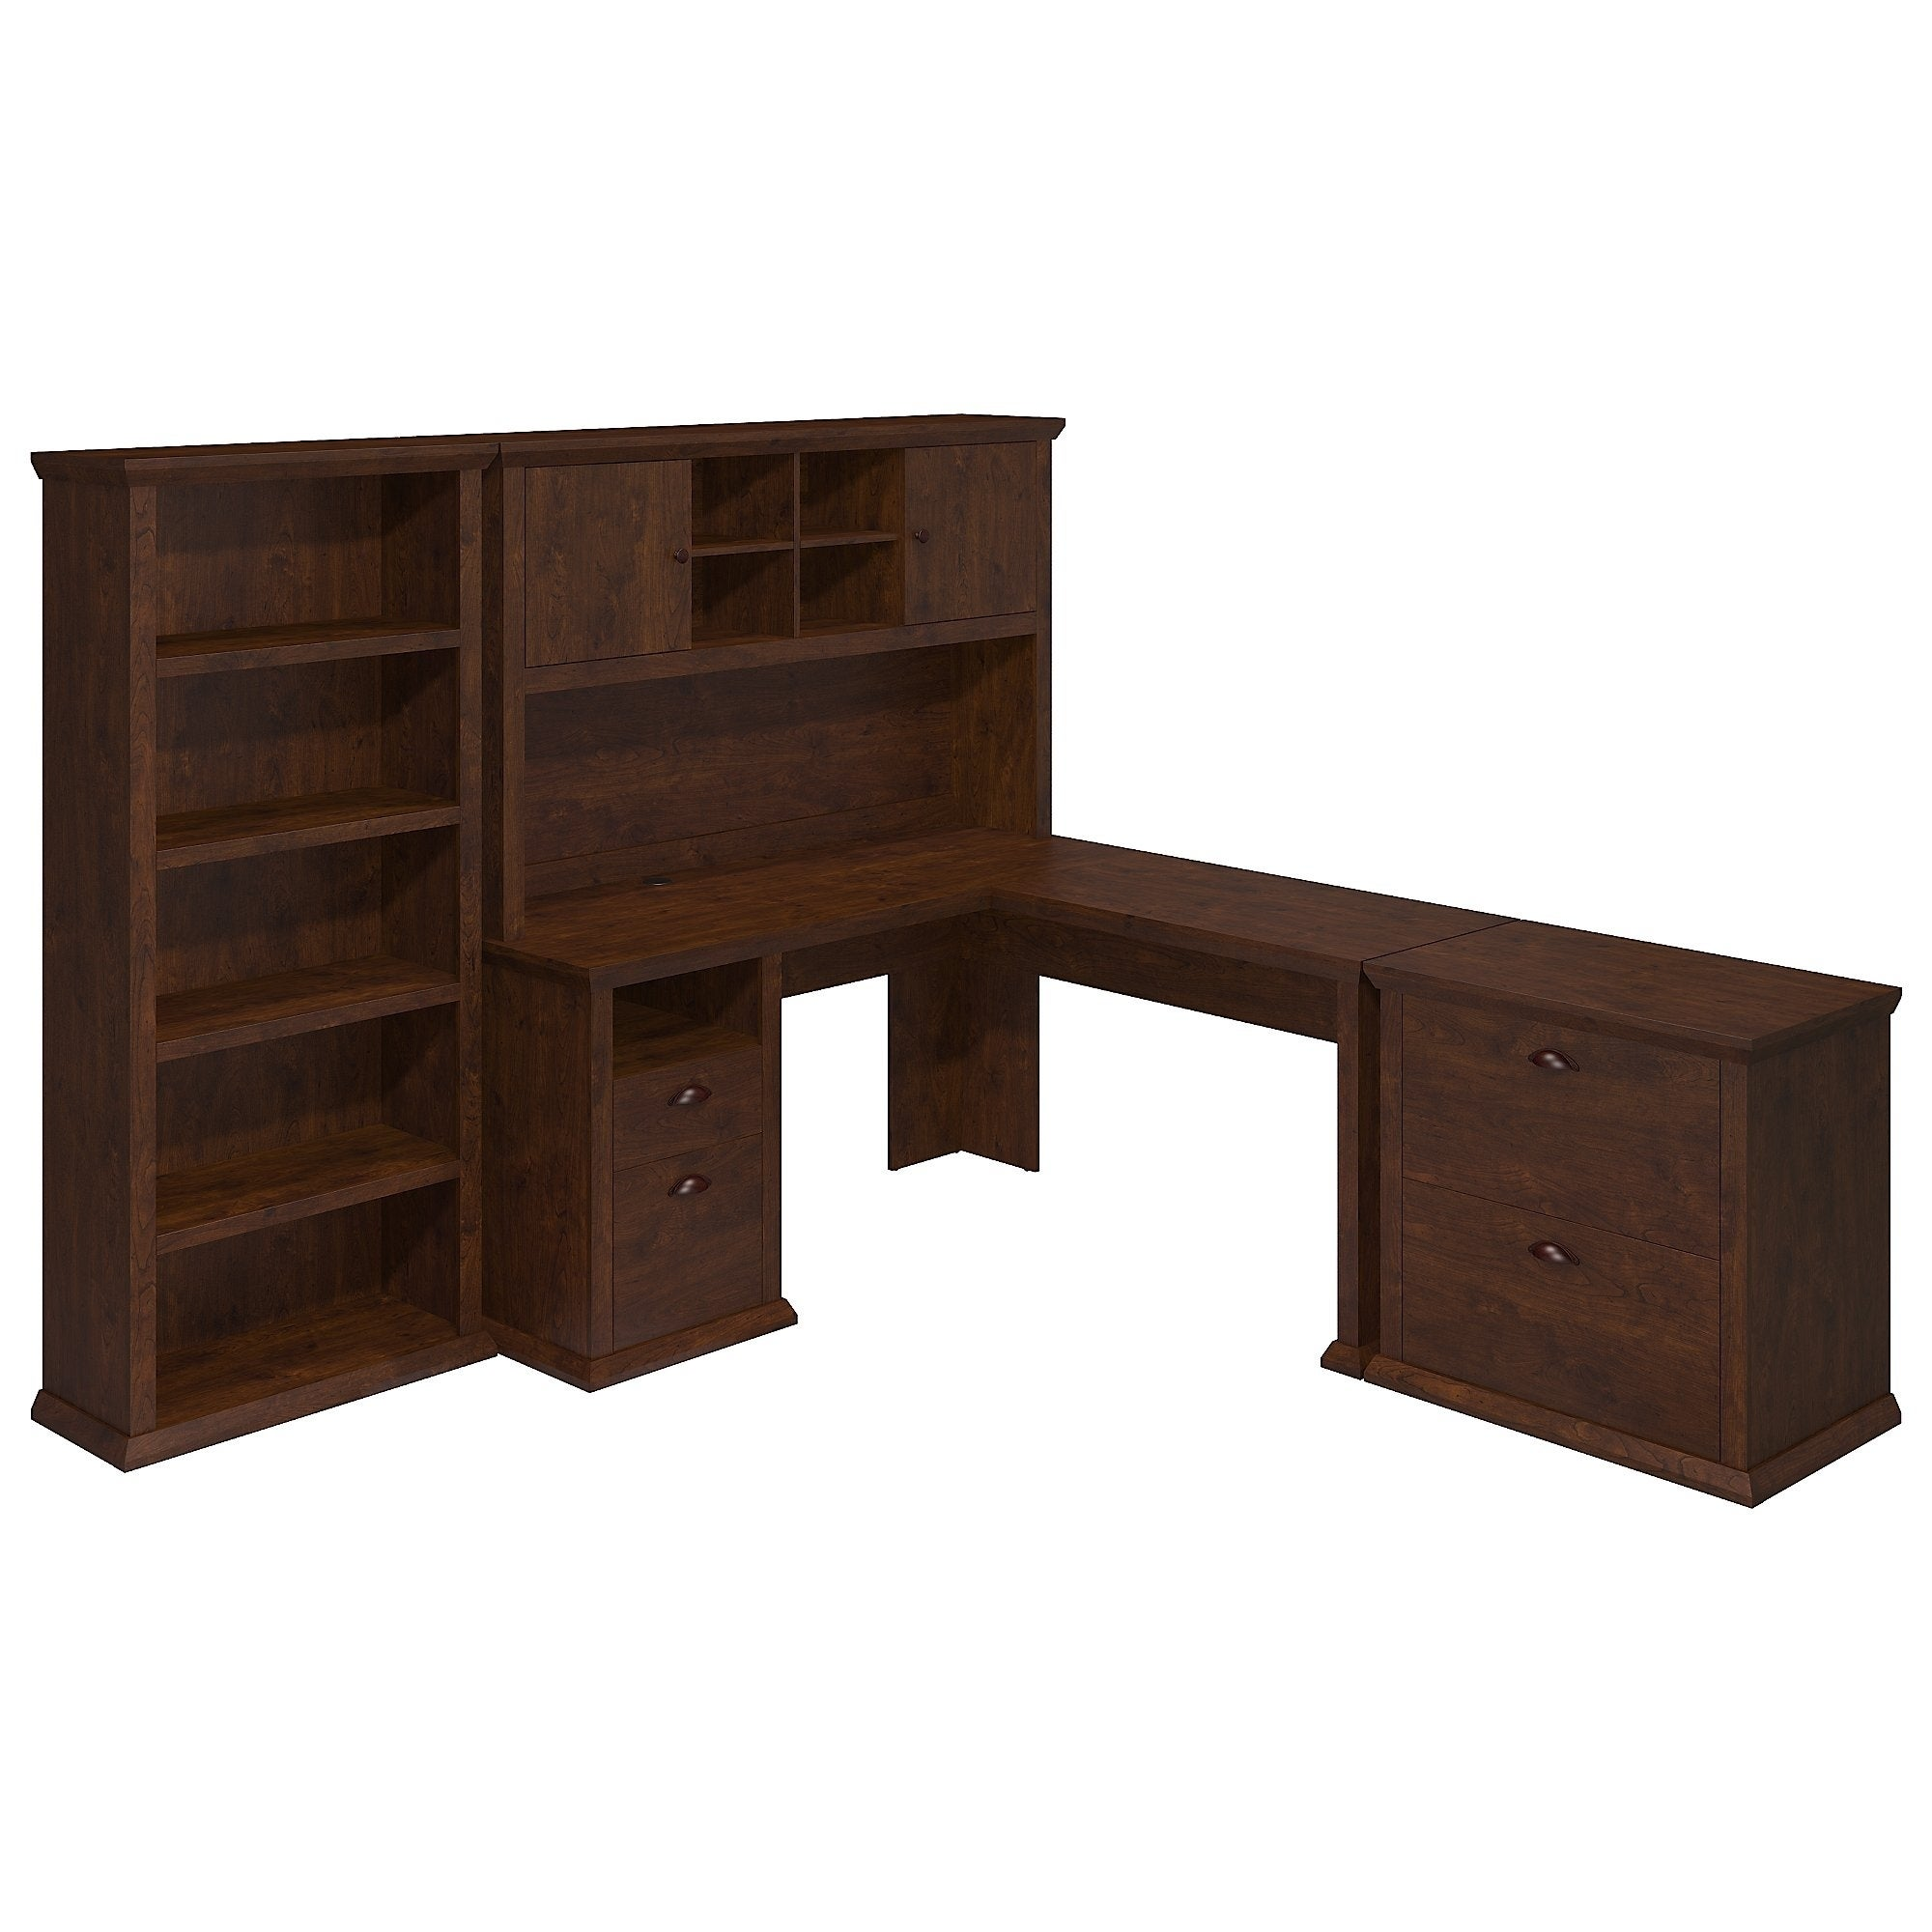 hutch creek desk sauder with organizer and shoal products drawers